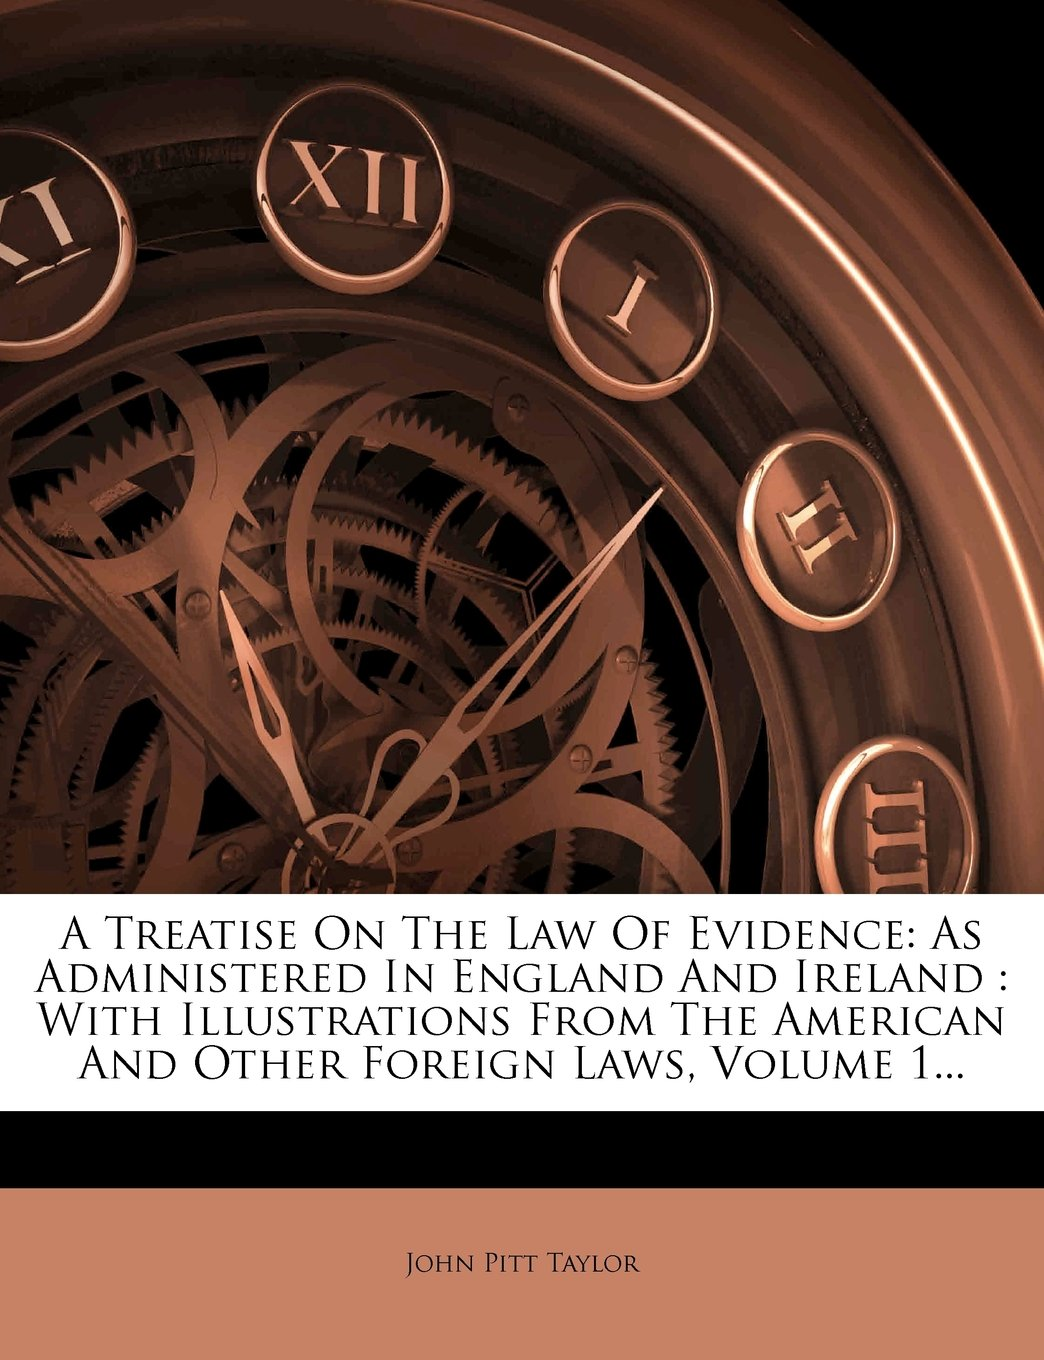 Read Online A Treatise on the Law of Evidence: As Administered in England and Ireland: With Illustrations from the American and Other Foreign Laws, Volume 1... pdf epub